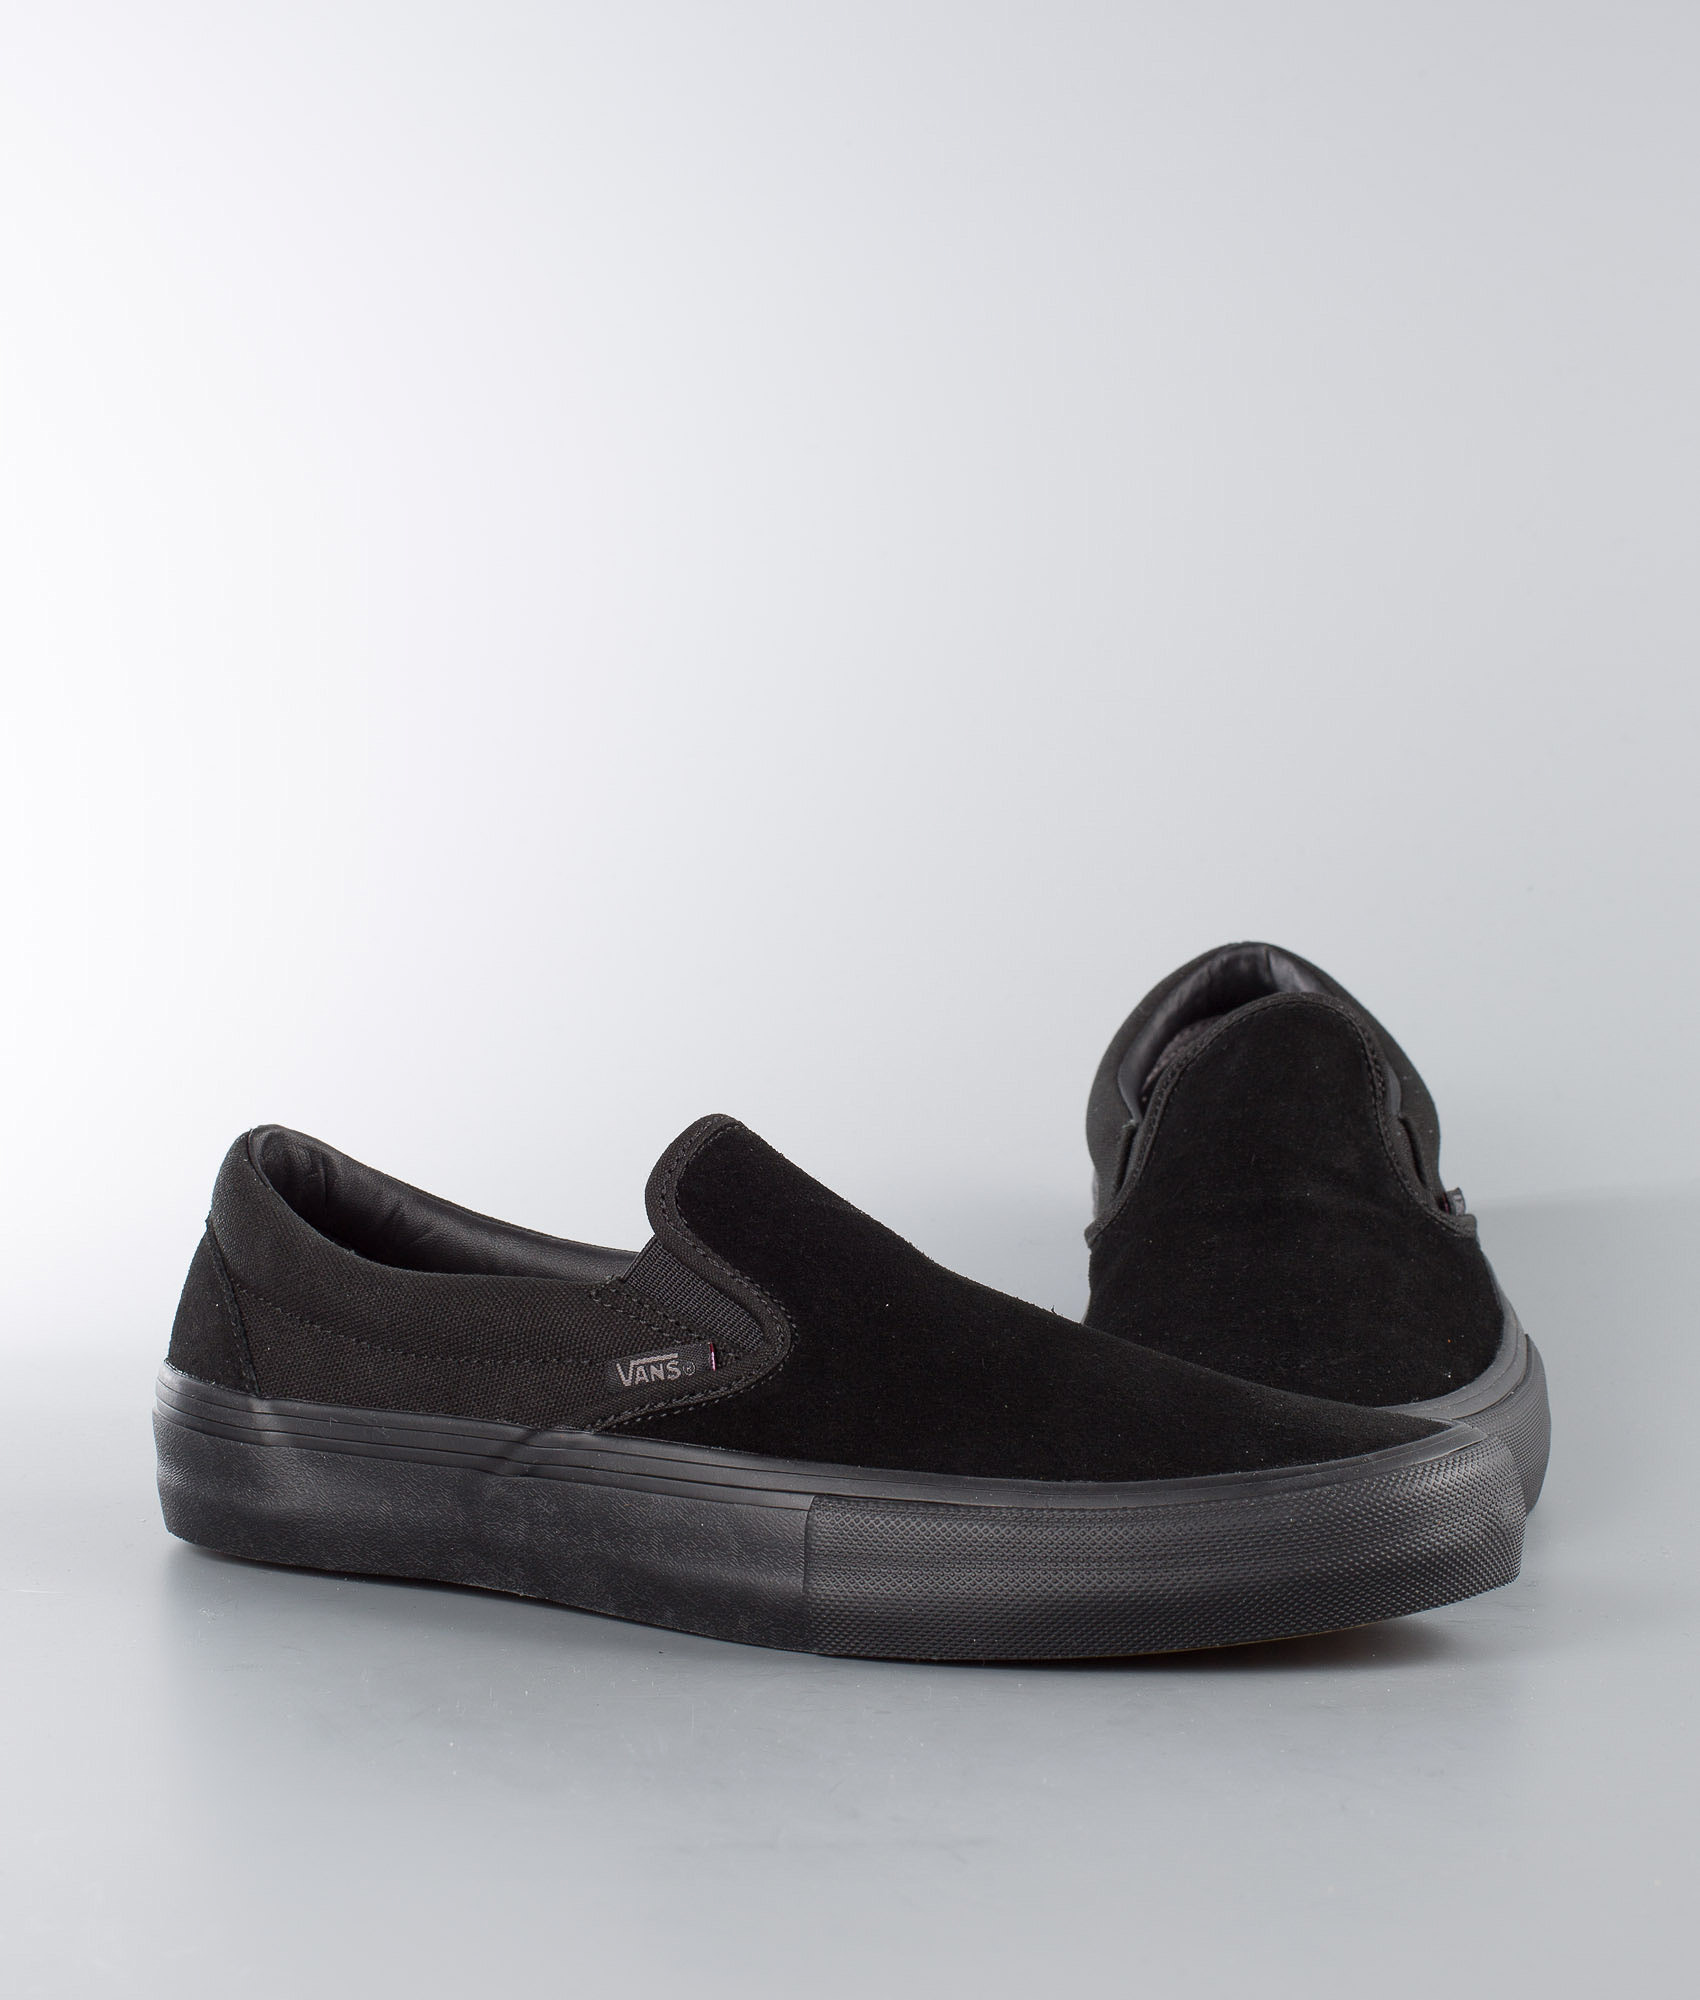 fb101b1a12 Vans Slip-On Pro Shoes Blackout - Ridestore.com